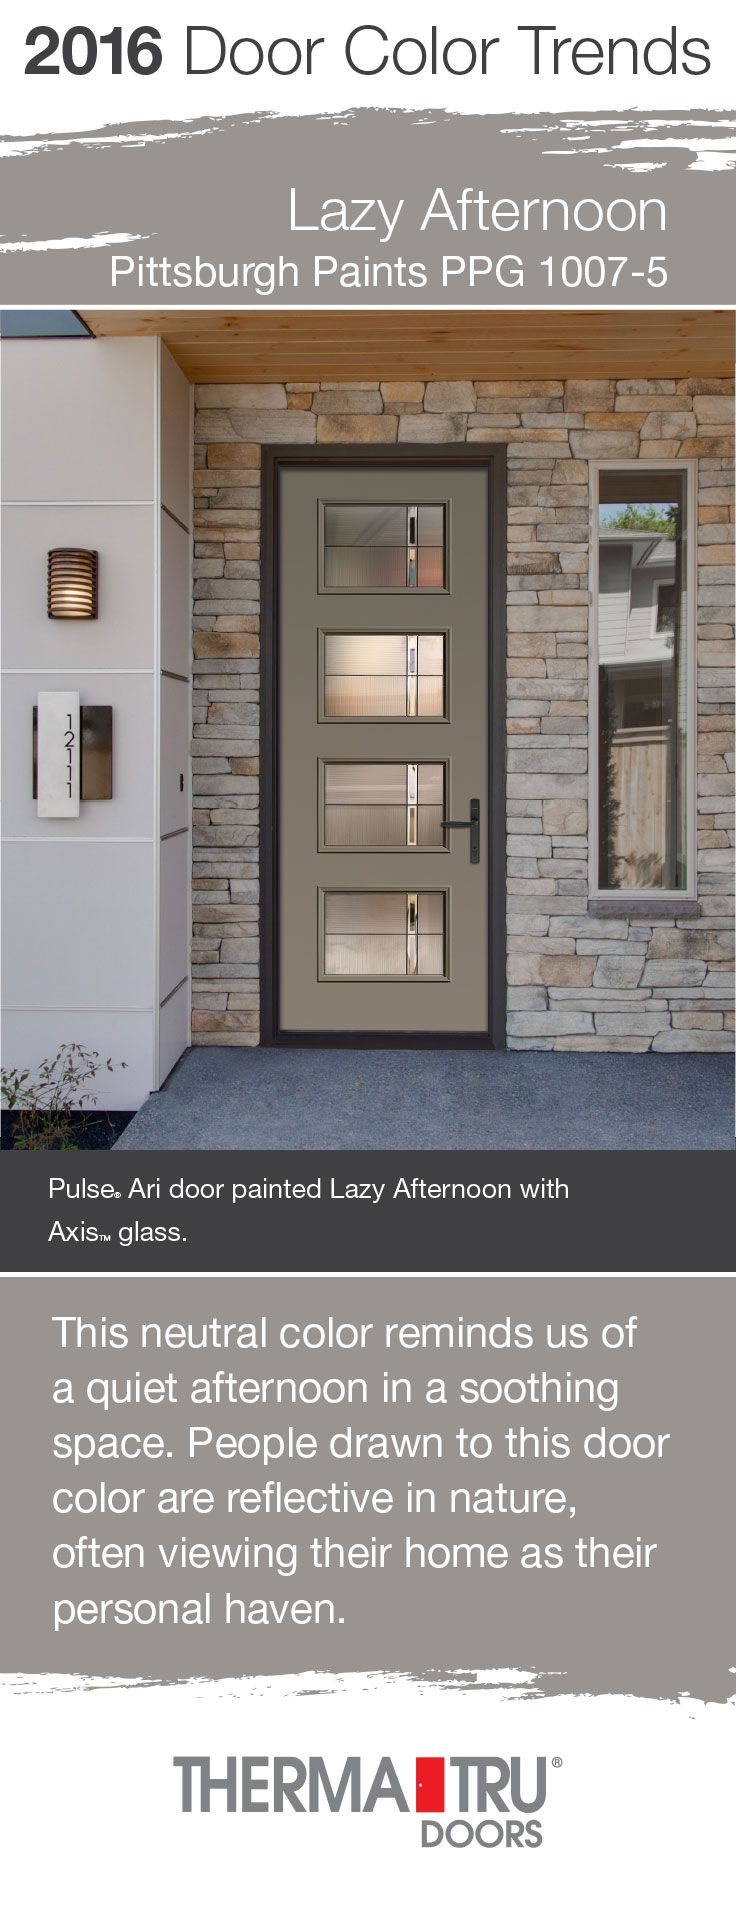 Lazy Afternoon by Pittsburgh Paints u2013 one of the front door color trends for 2016 u2013 & 13 best Fabulous Front Door Paint Colors images on Pinterest ...